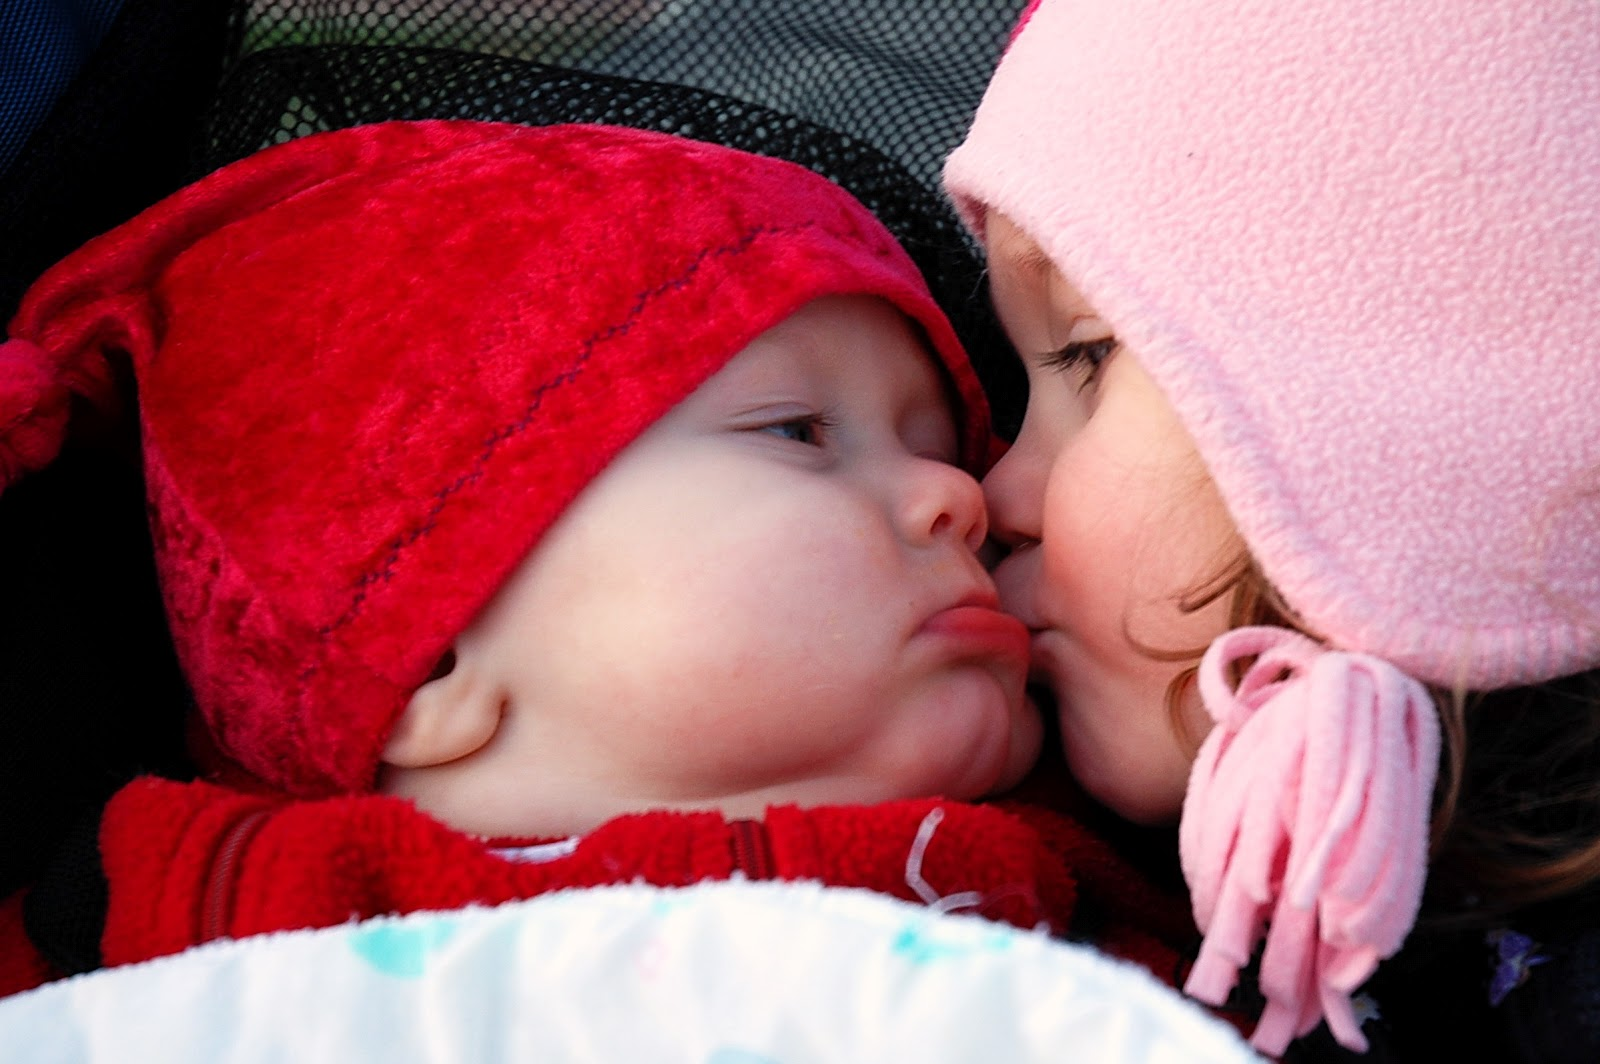 Kissing baby love images download cute baby love images download love